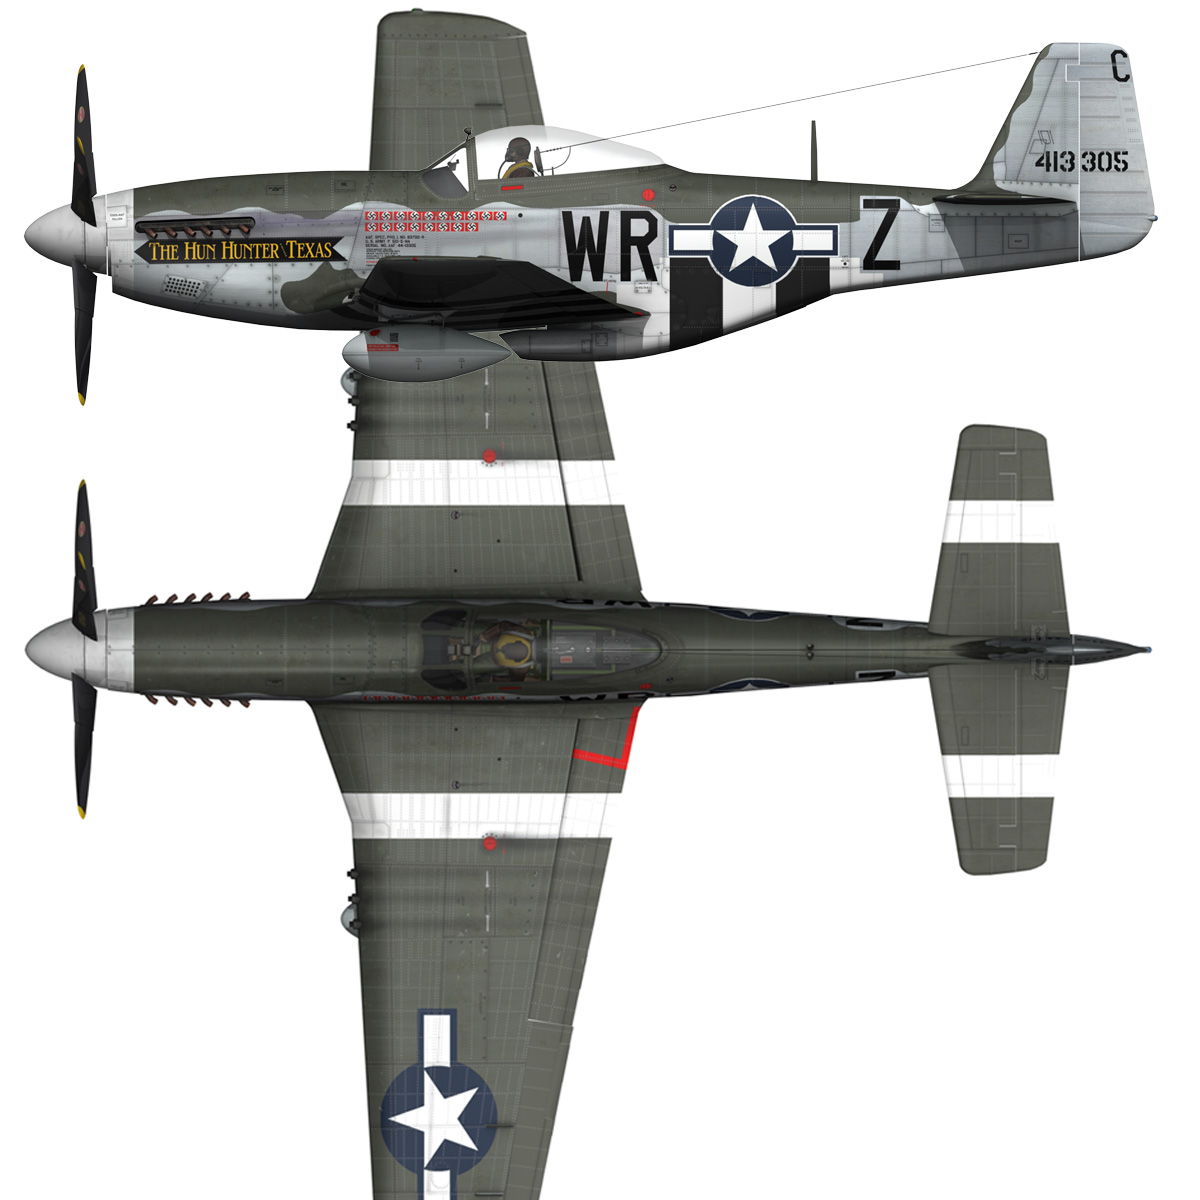 north american p-51d – the hun hunter / texas 3d model fbx c4d lwo obj 282527